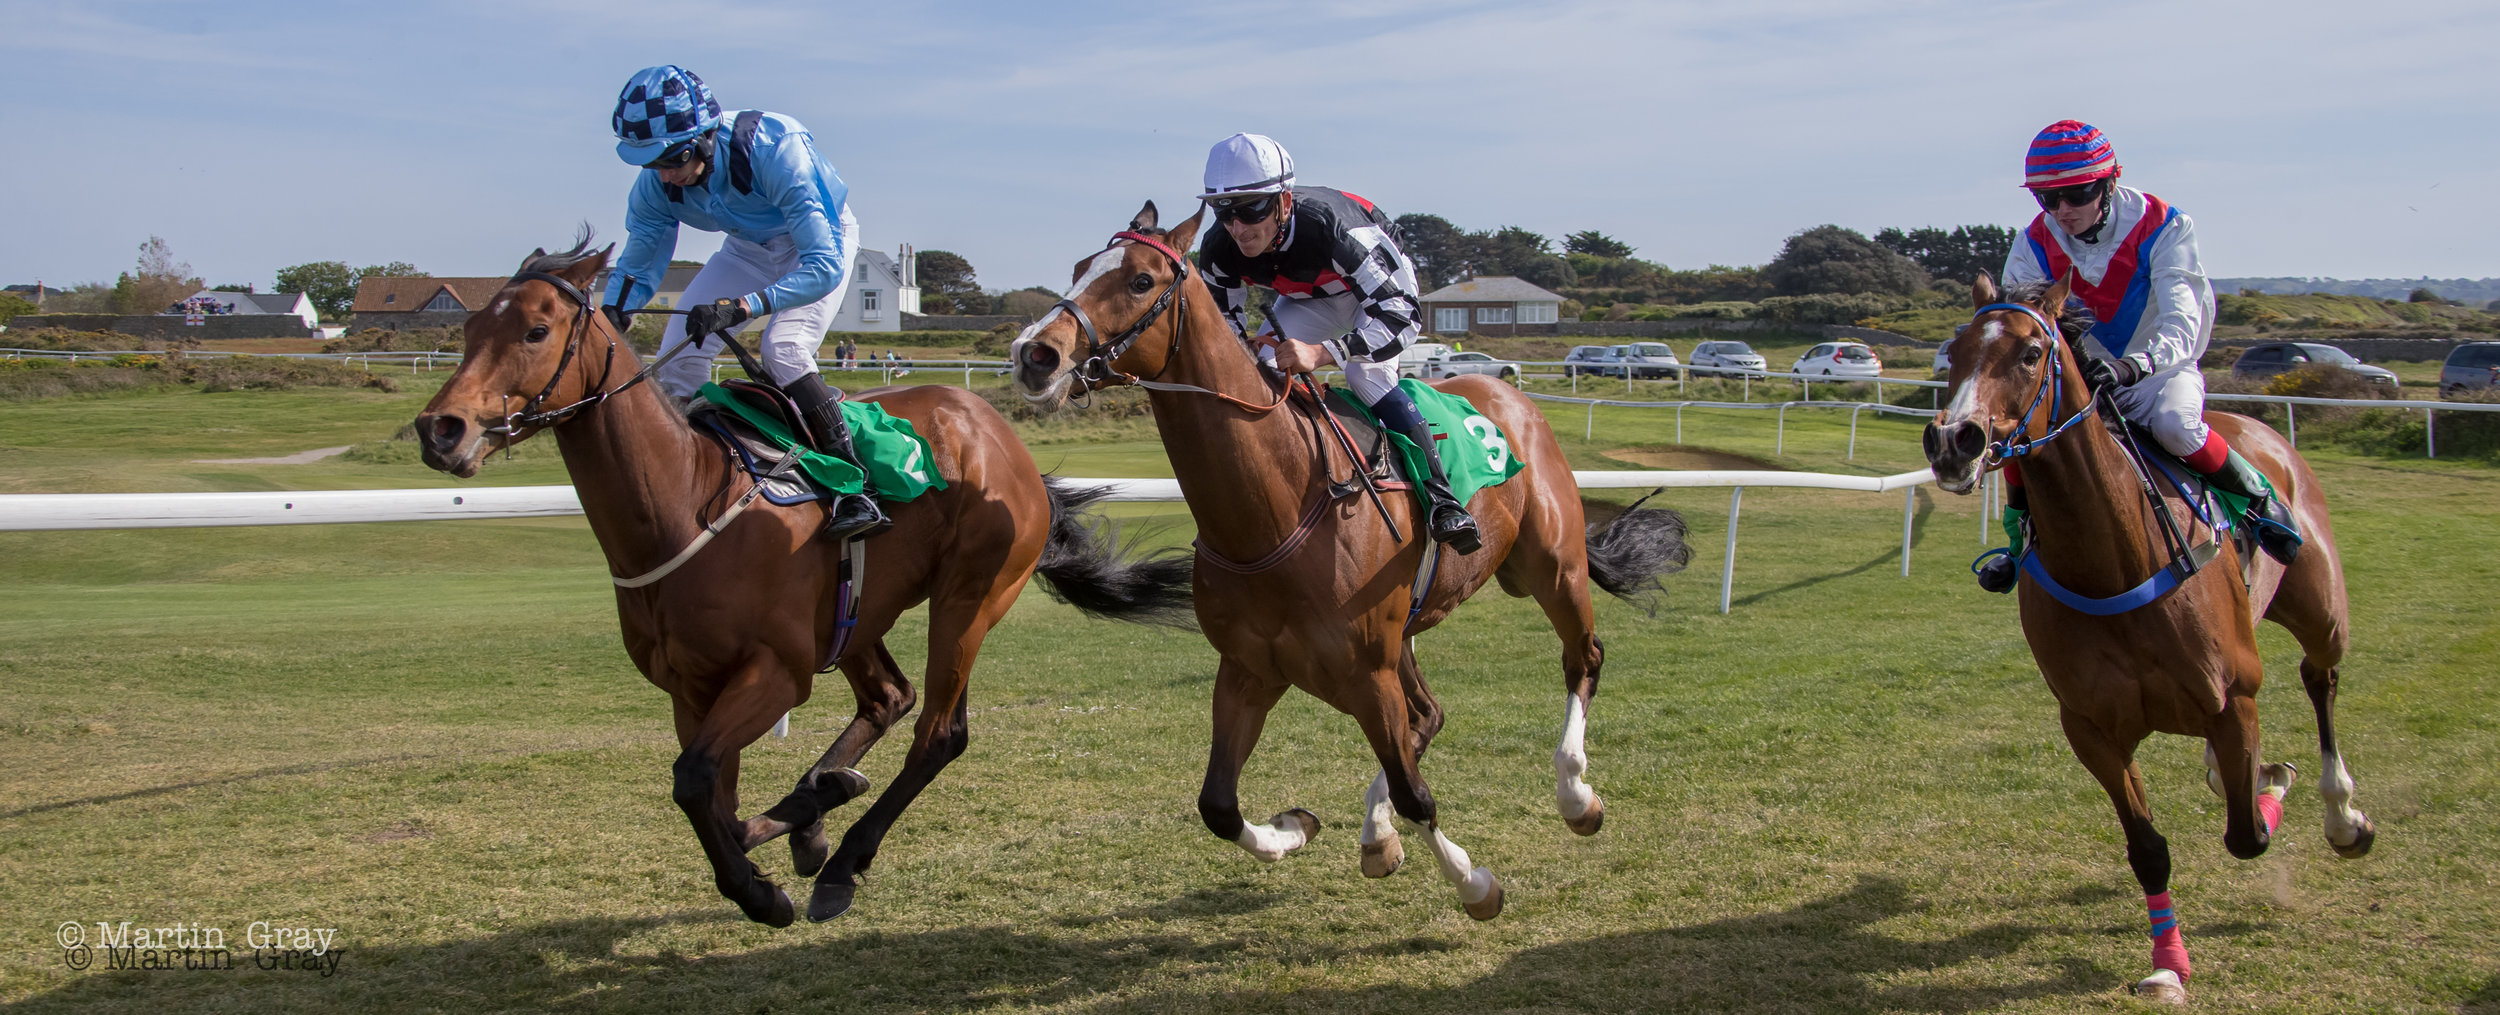 The Guernsey Race Club L'Ancresse Meeting on 6th May 2019